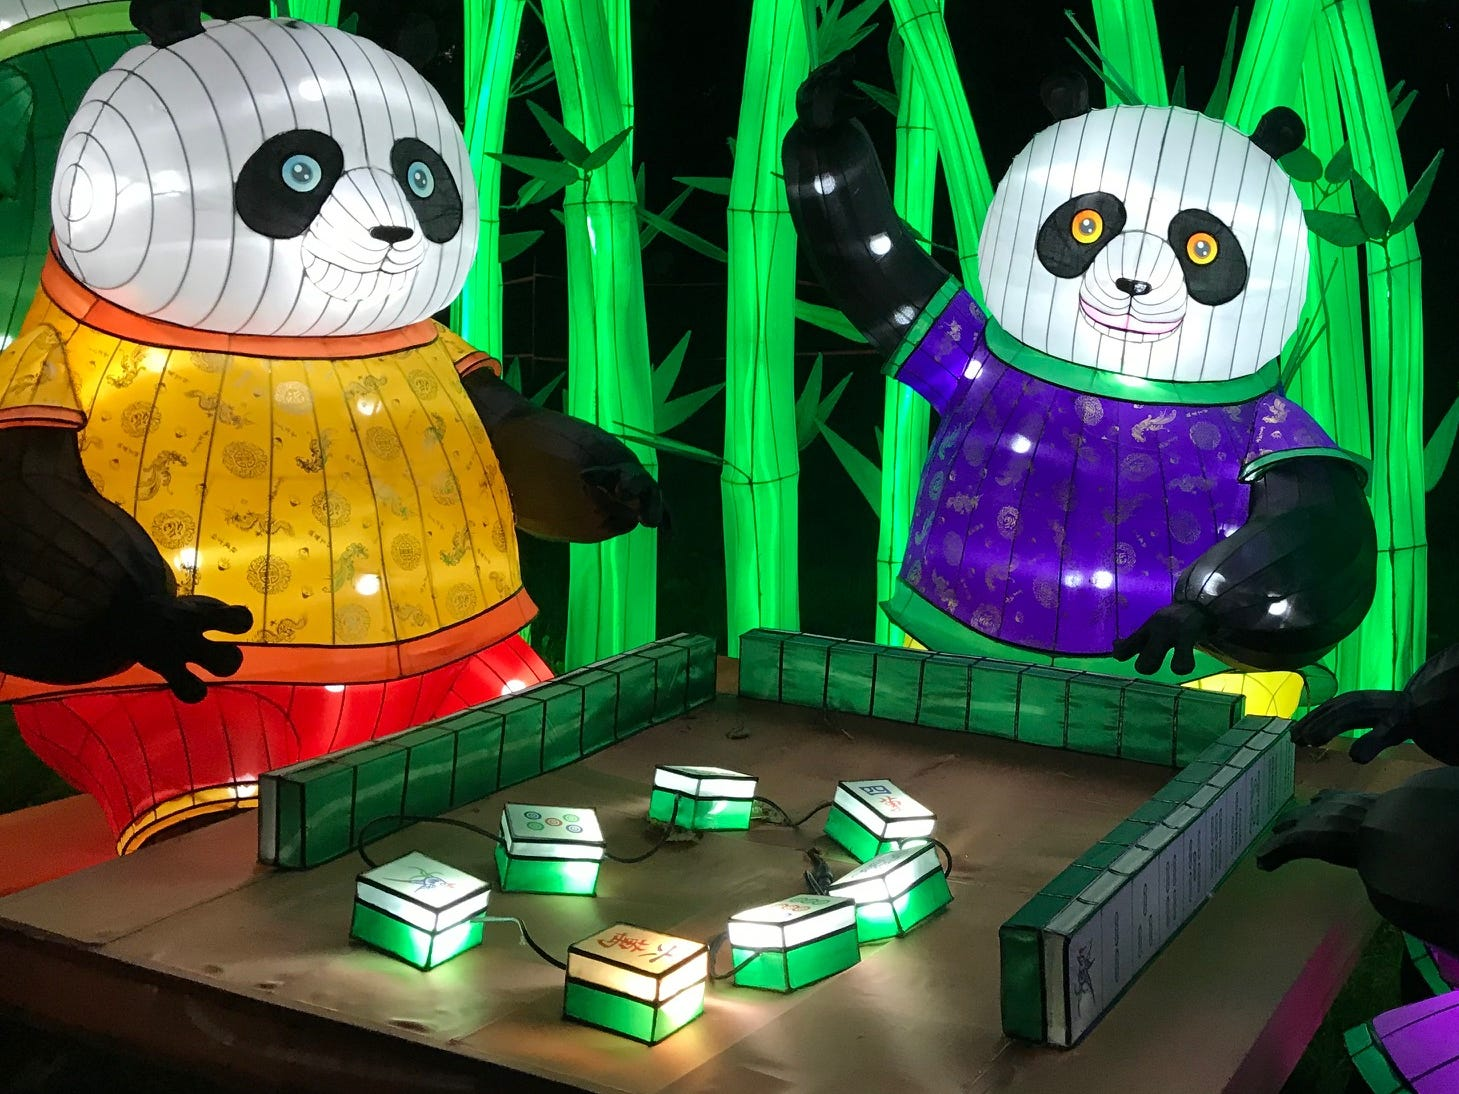 The pandas at the China Lights lantern festival sure love to play. This was the third straight year artisans from Zigong City, China, have come here to create lanterns for the festival.